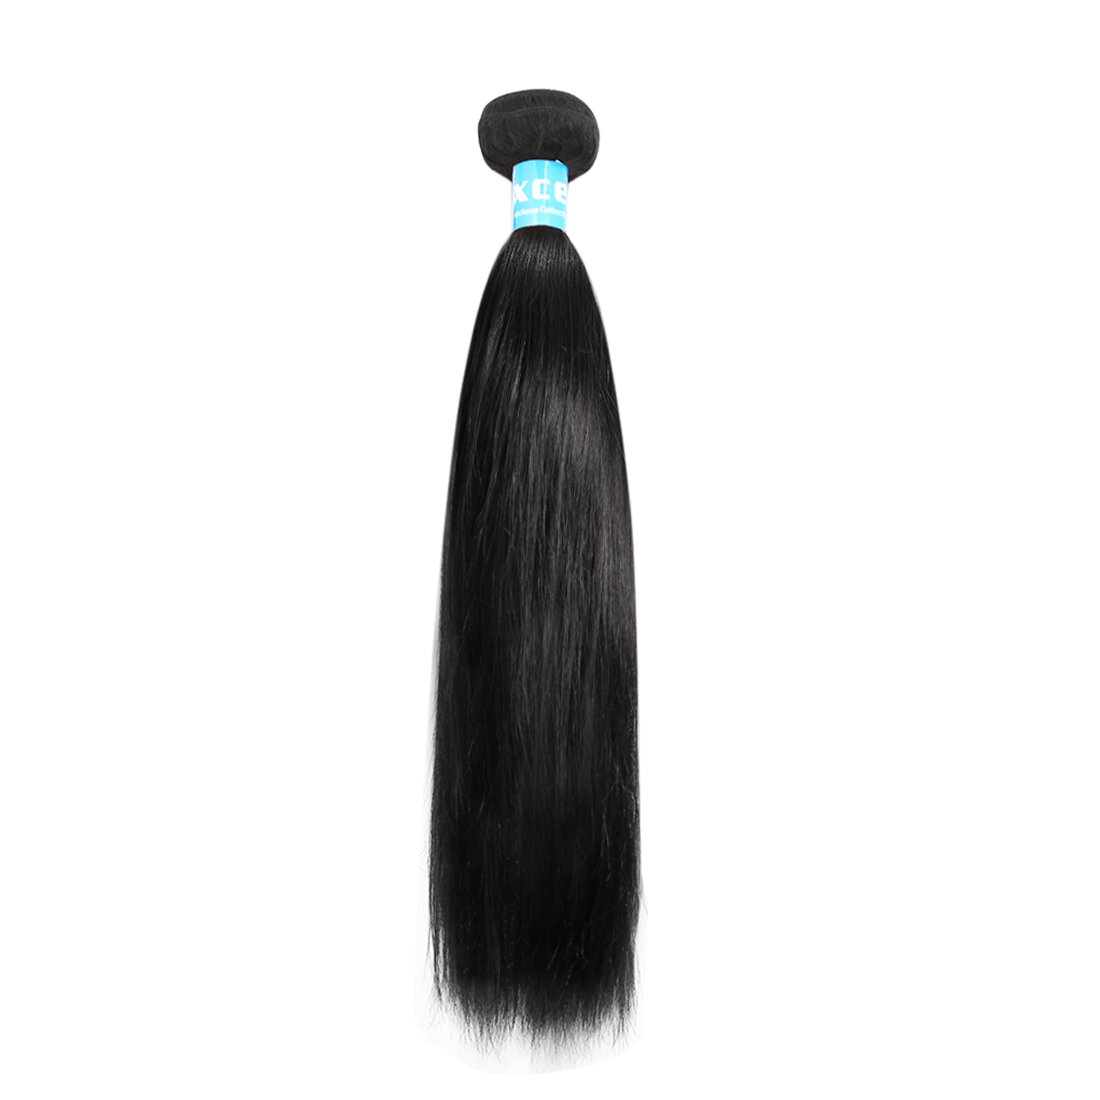 "Brazilian Remy Silky Straight Human Hair Weave Weft Extensions 6A 12"" 1 Bundle"